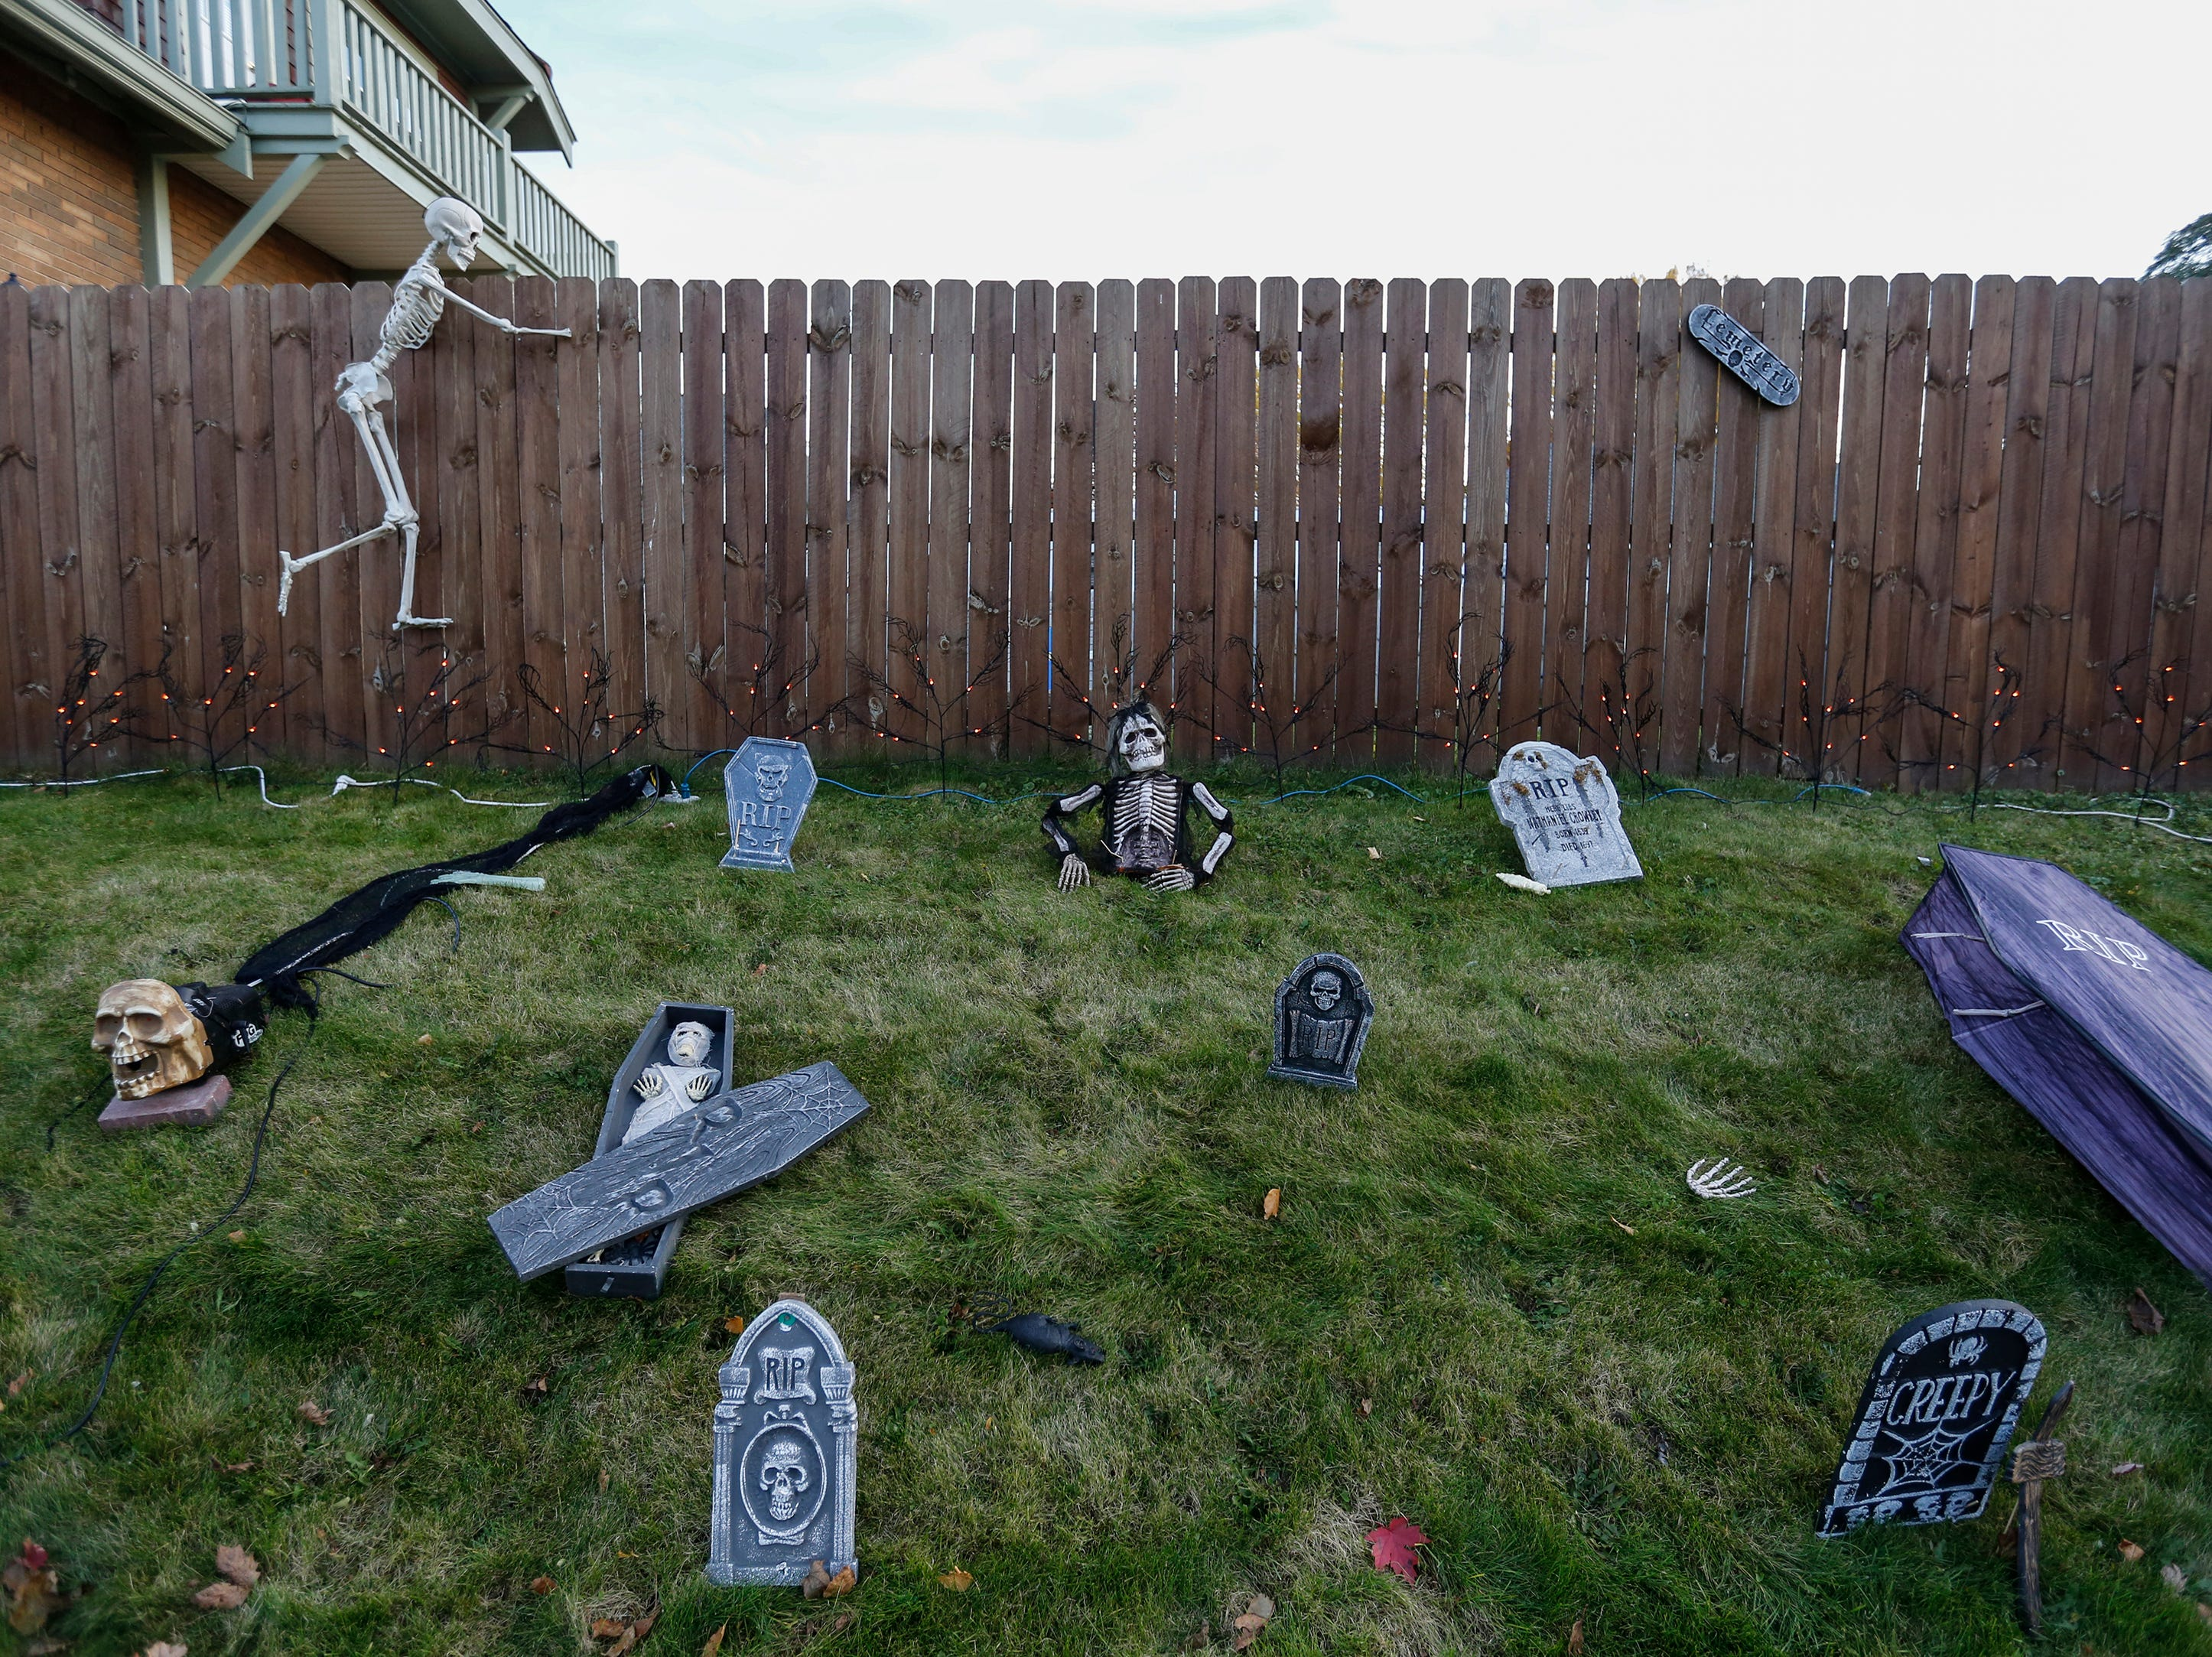 Halloween decorations on a lawn as kids trick or treat Wednesday, October 31, 2018, in Manitowoc, Wis. Joshua Clark/USA TODAY NETWORK-Wisconsin